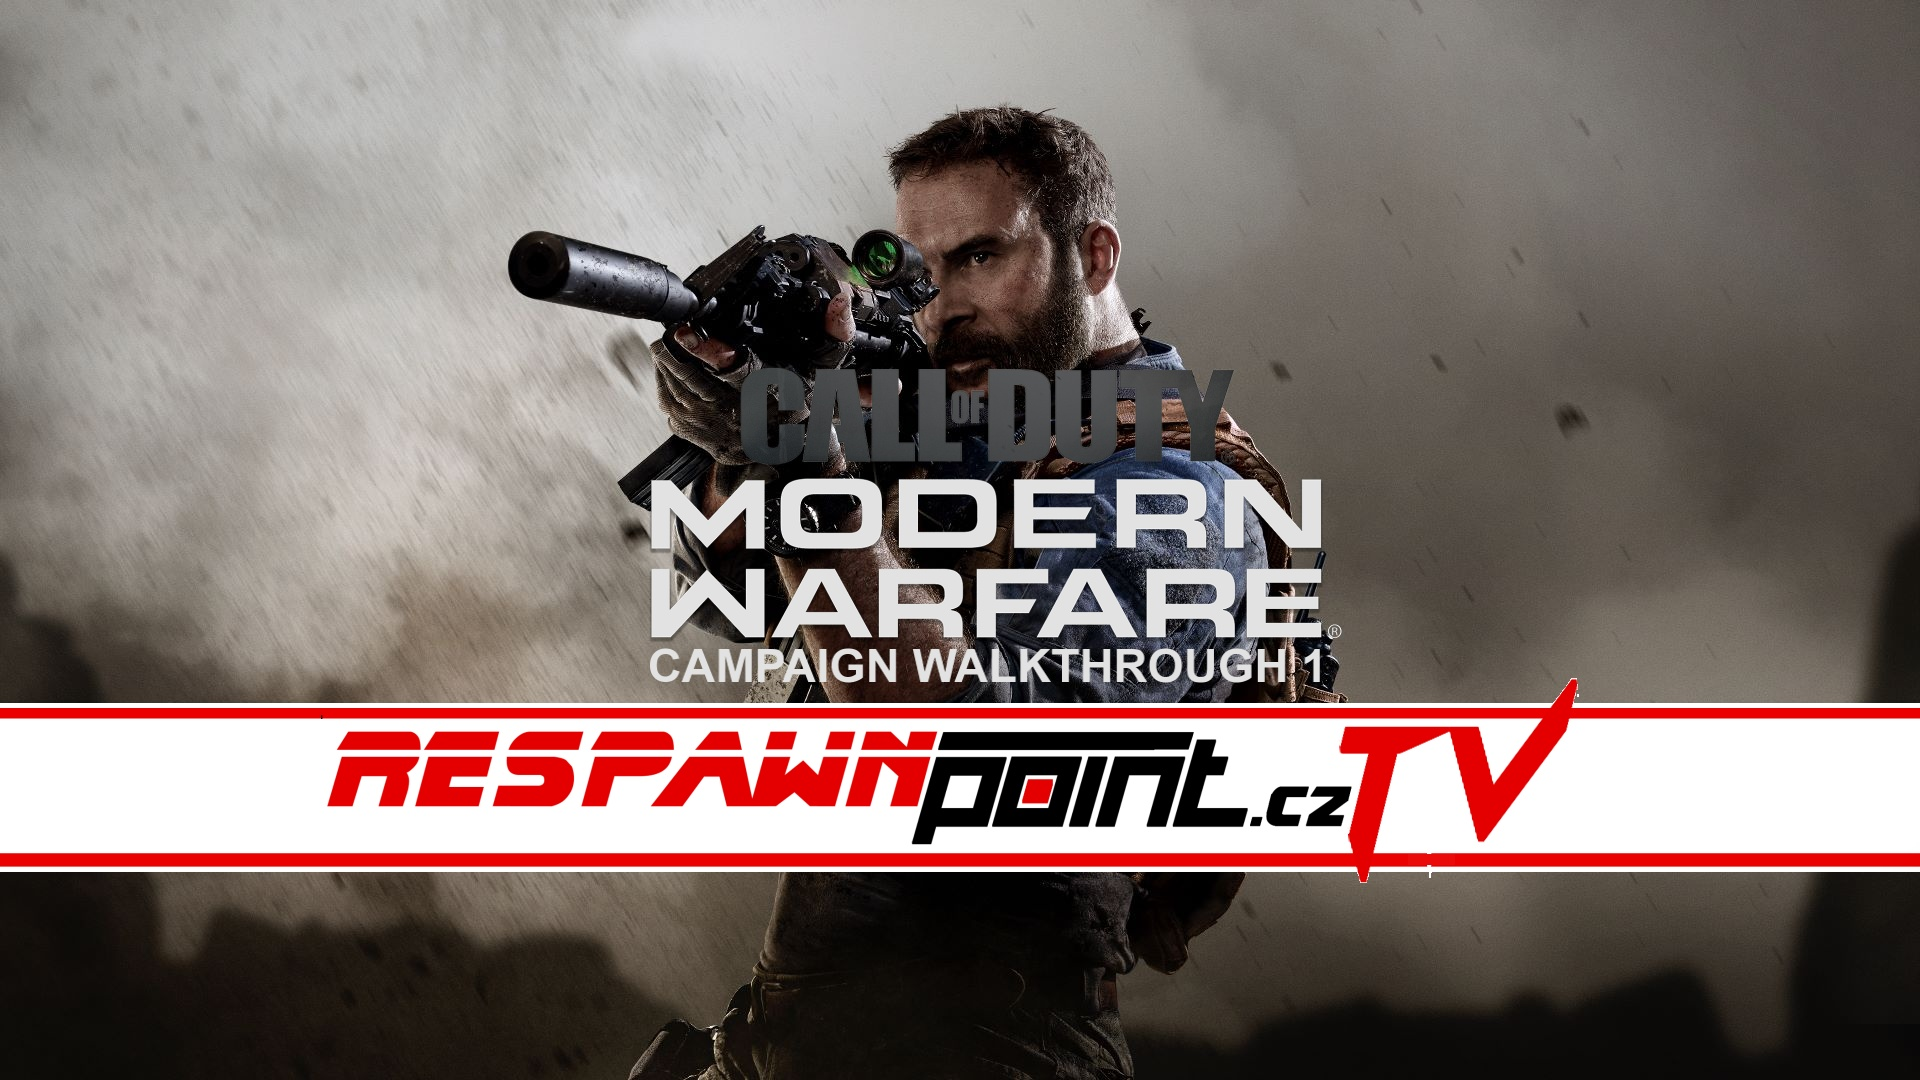 Call of Duty Modern Warfare – Campaign Walkthrough 1